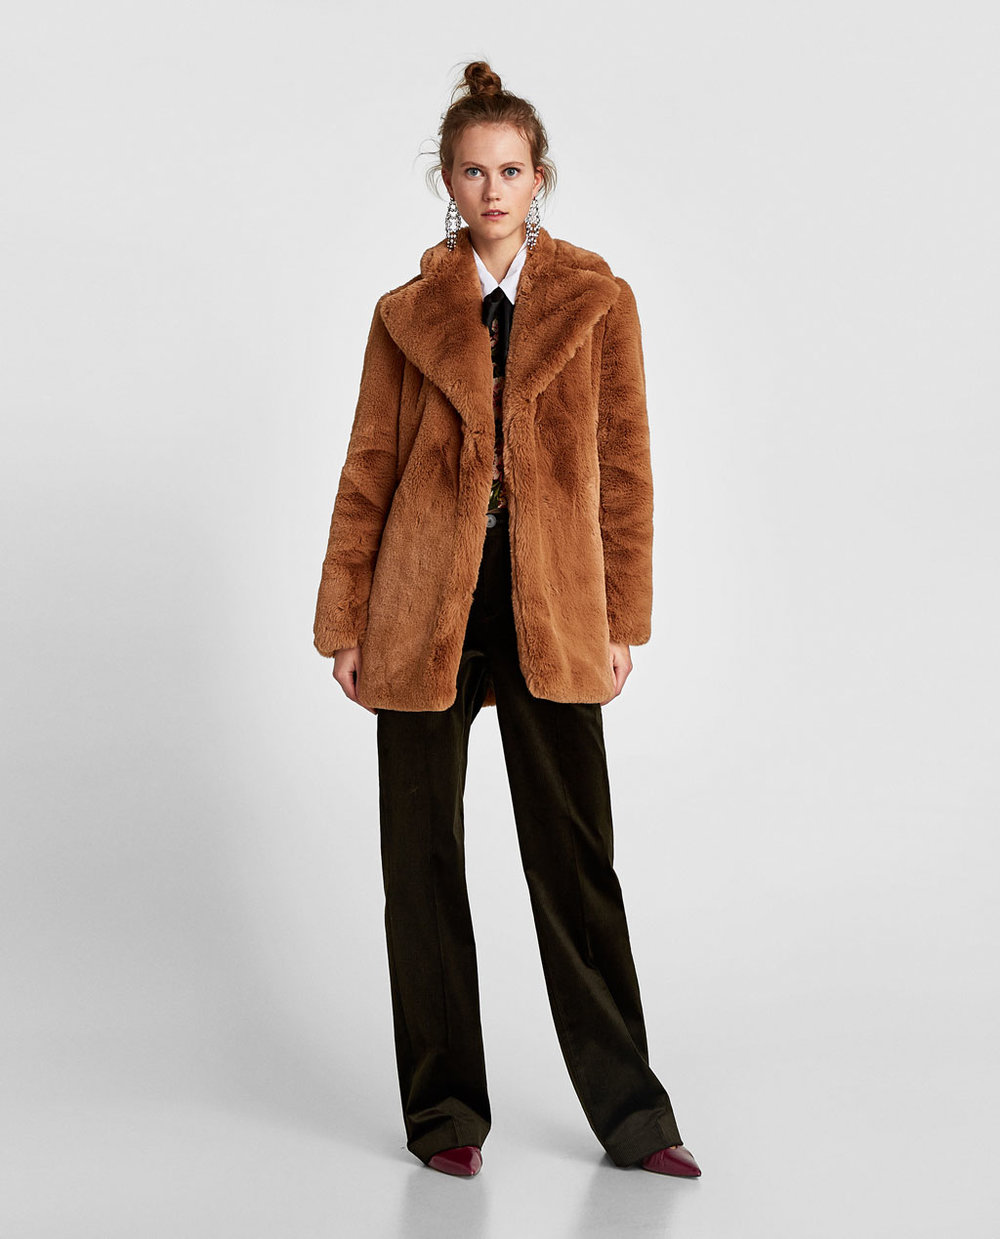 2. Fur Short Coat